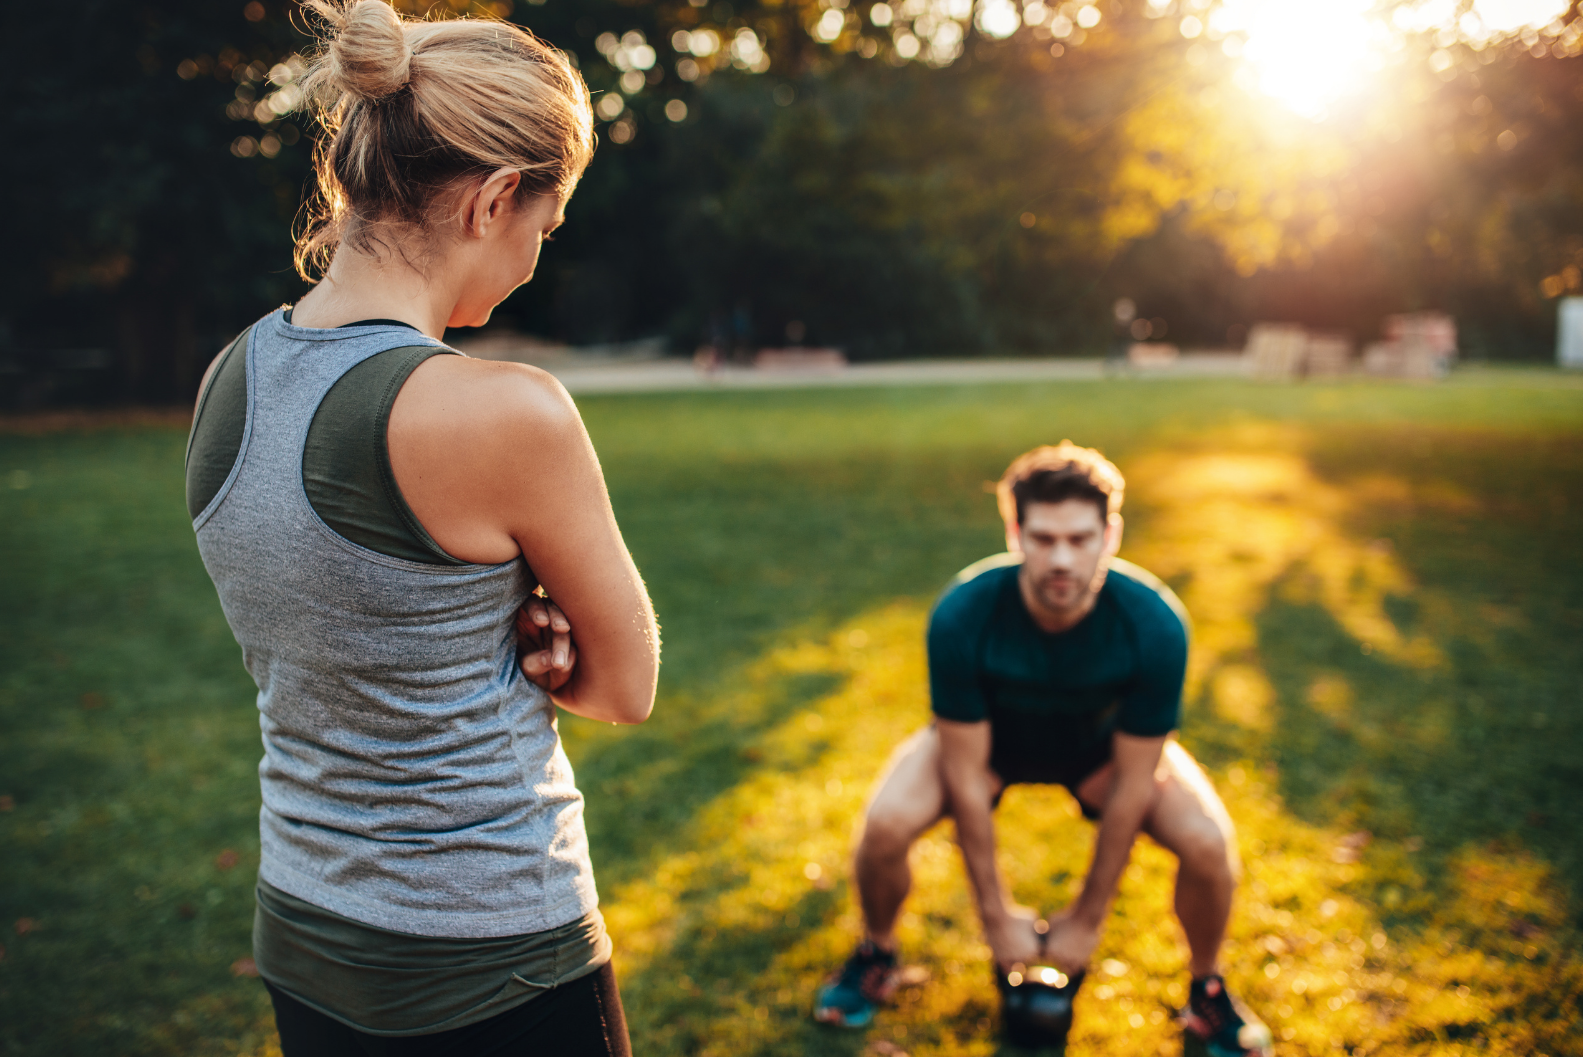 A female fitness trainer overseeing a male student as he swings a kettle-ball in an open park